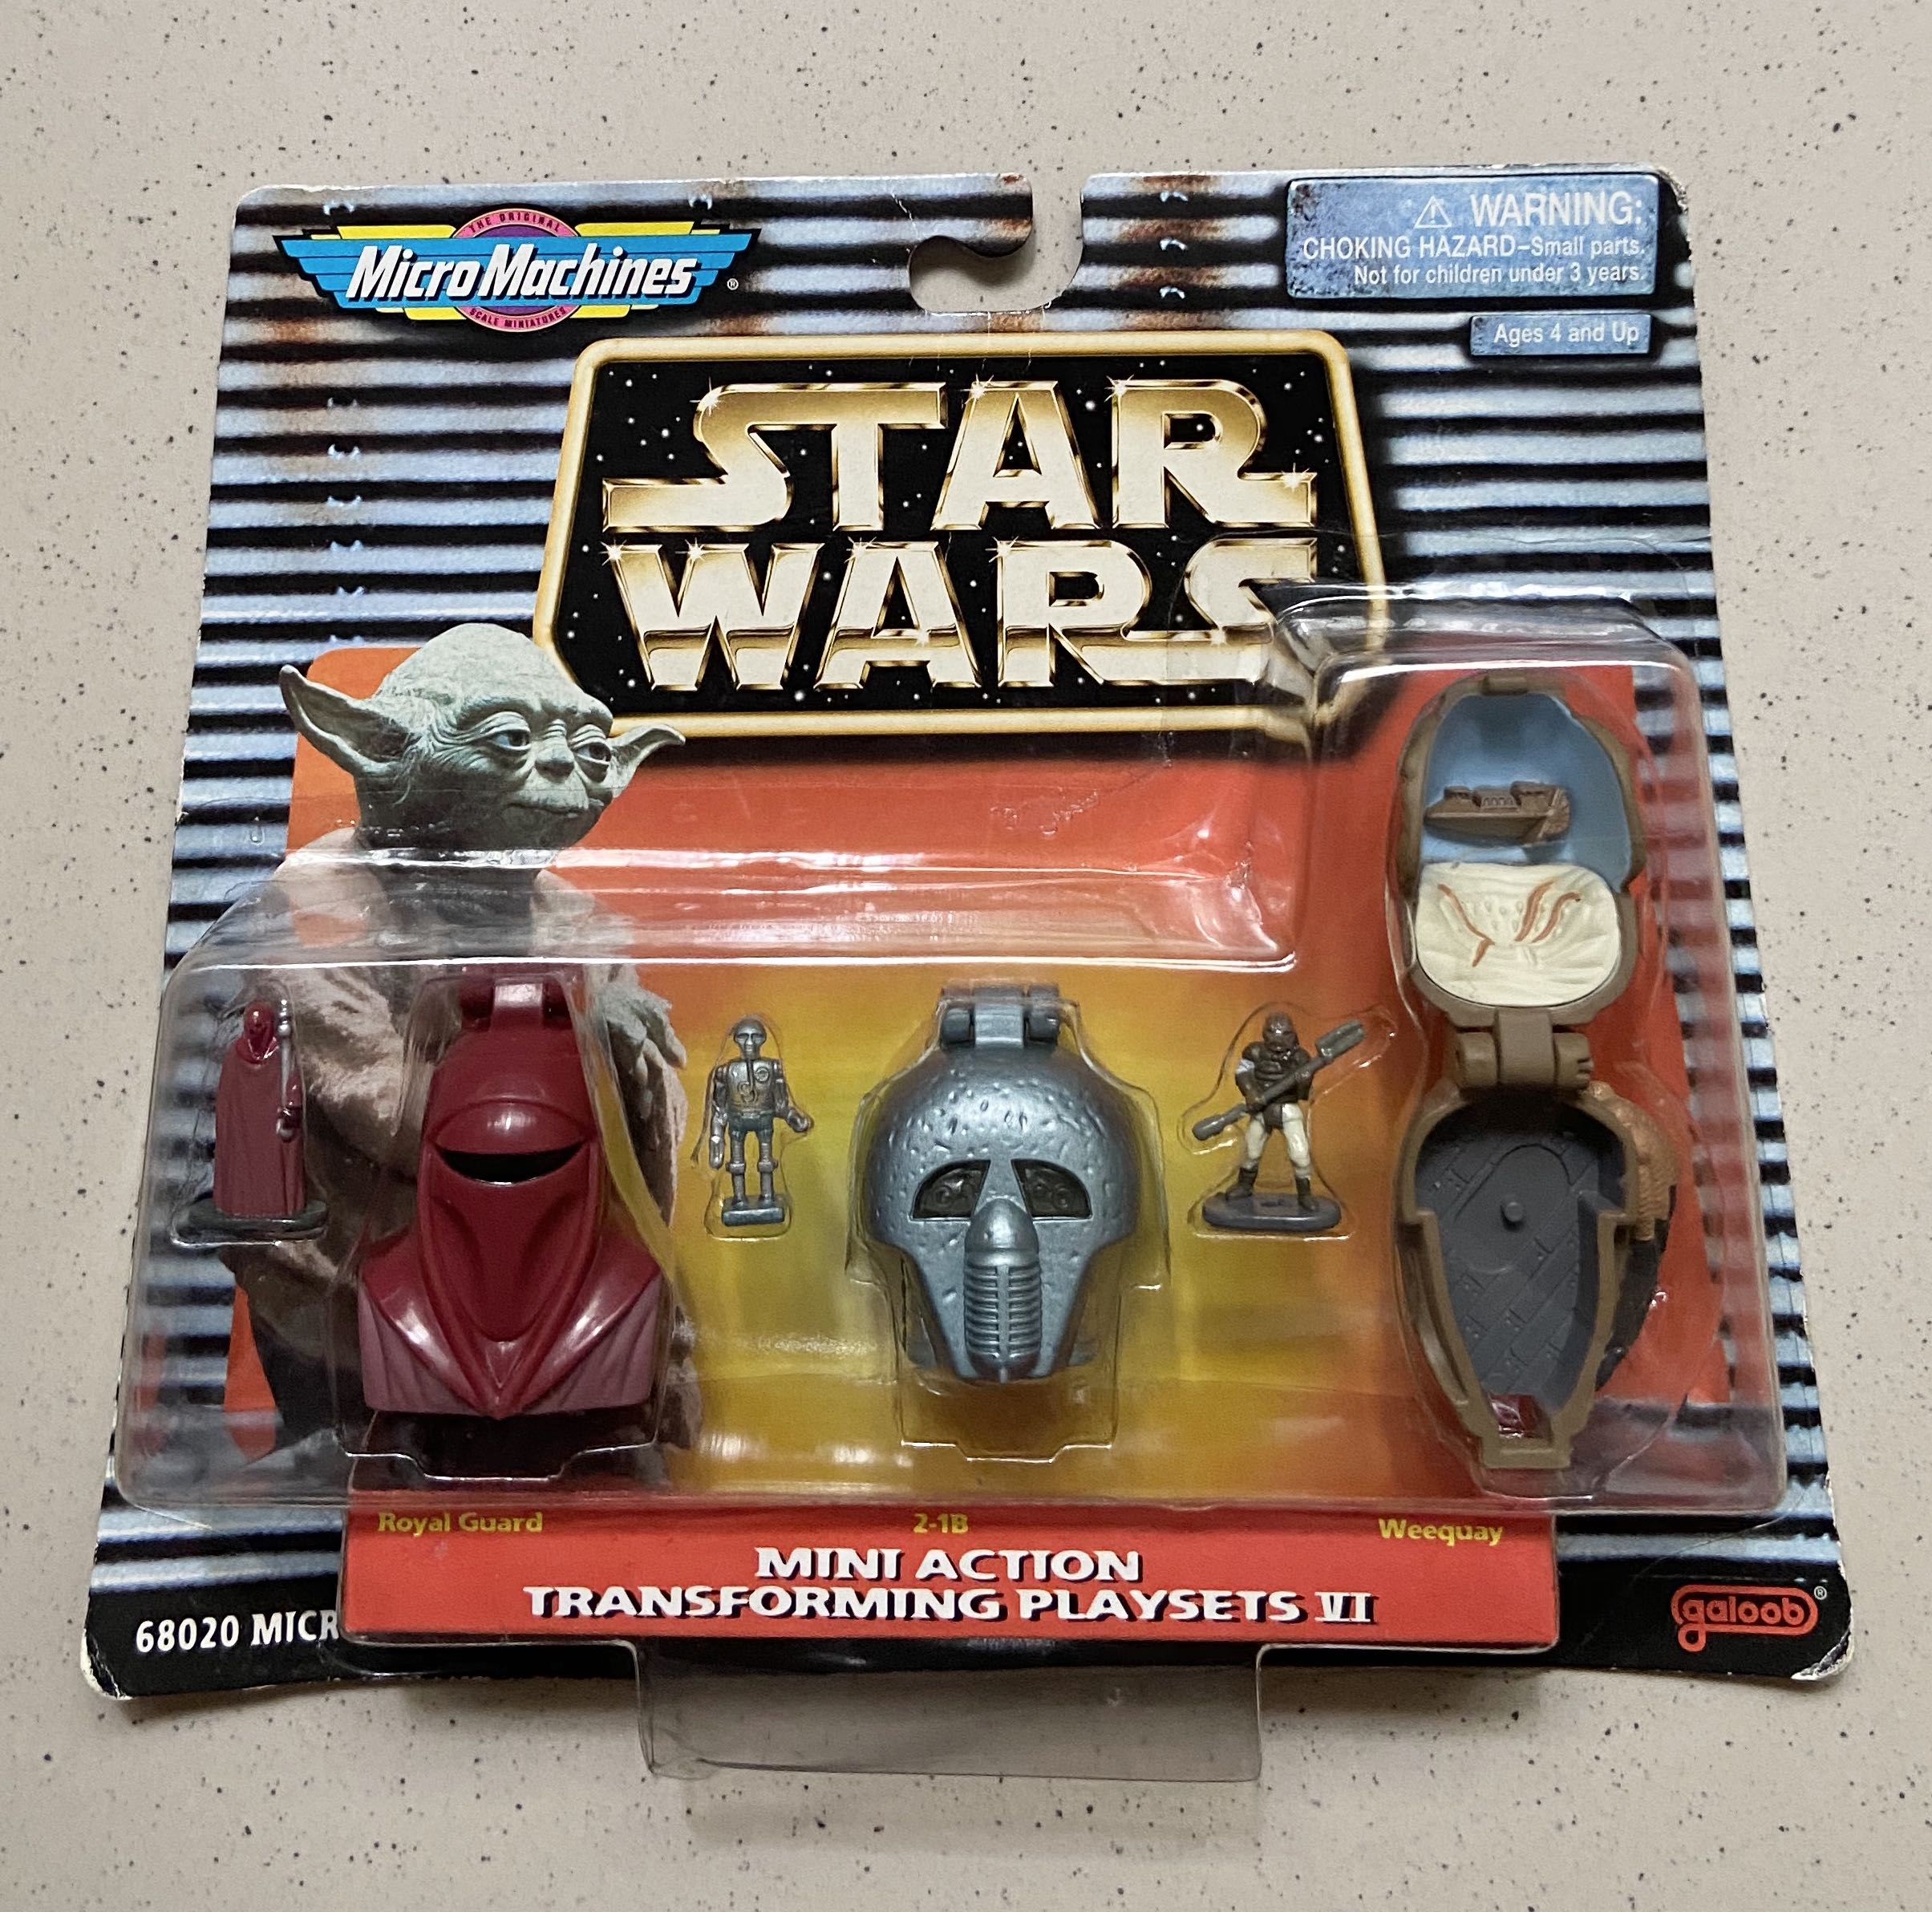 Details about  /Micro Machines Star Wars Transforming Royal Guard